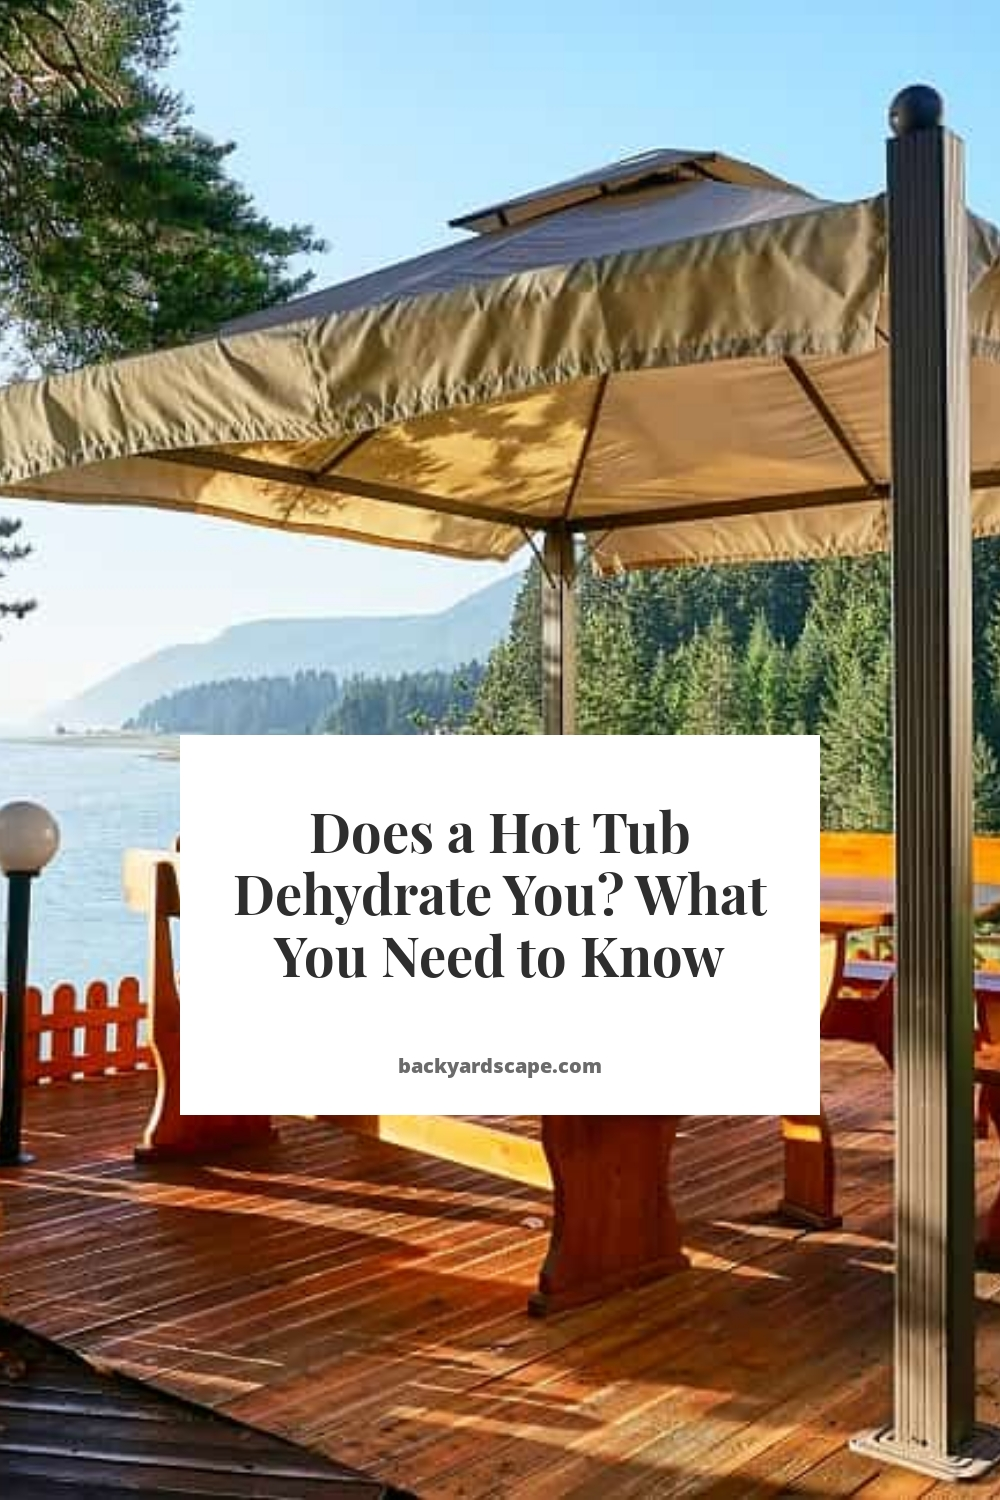 Does a Hot Tub Dehydrate You? What You Need to Know